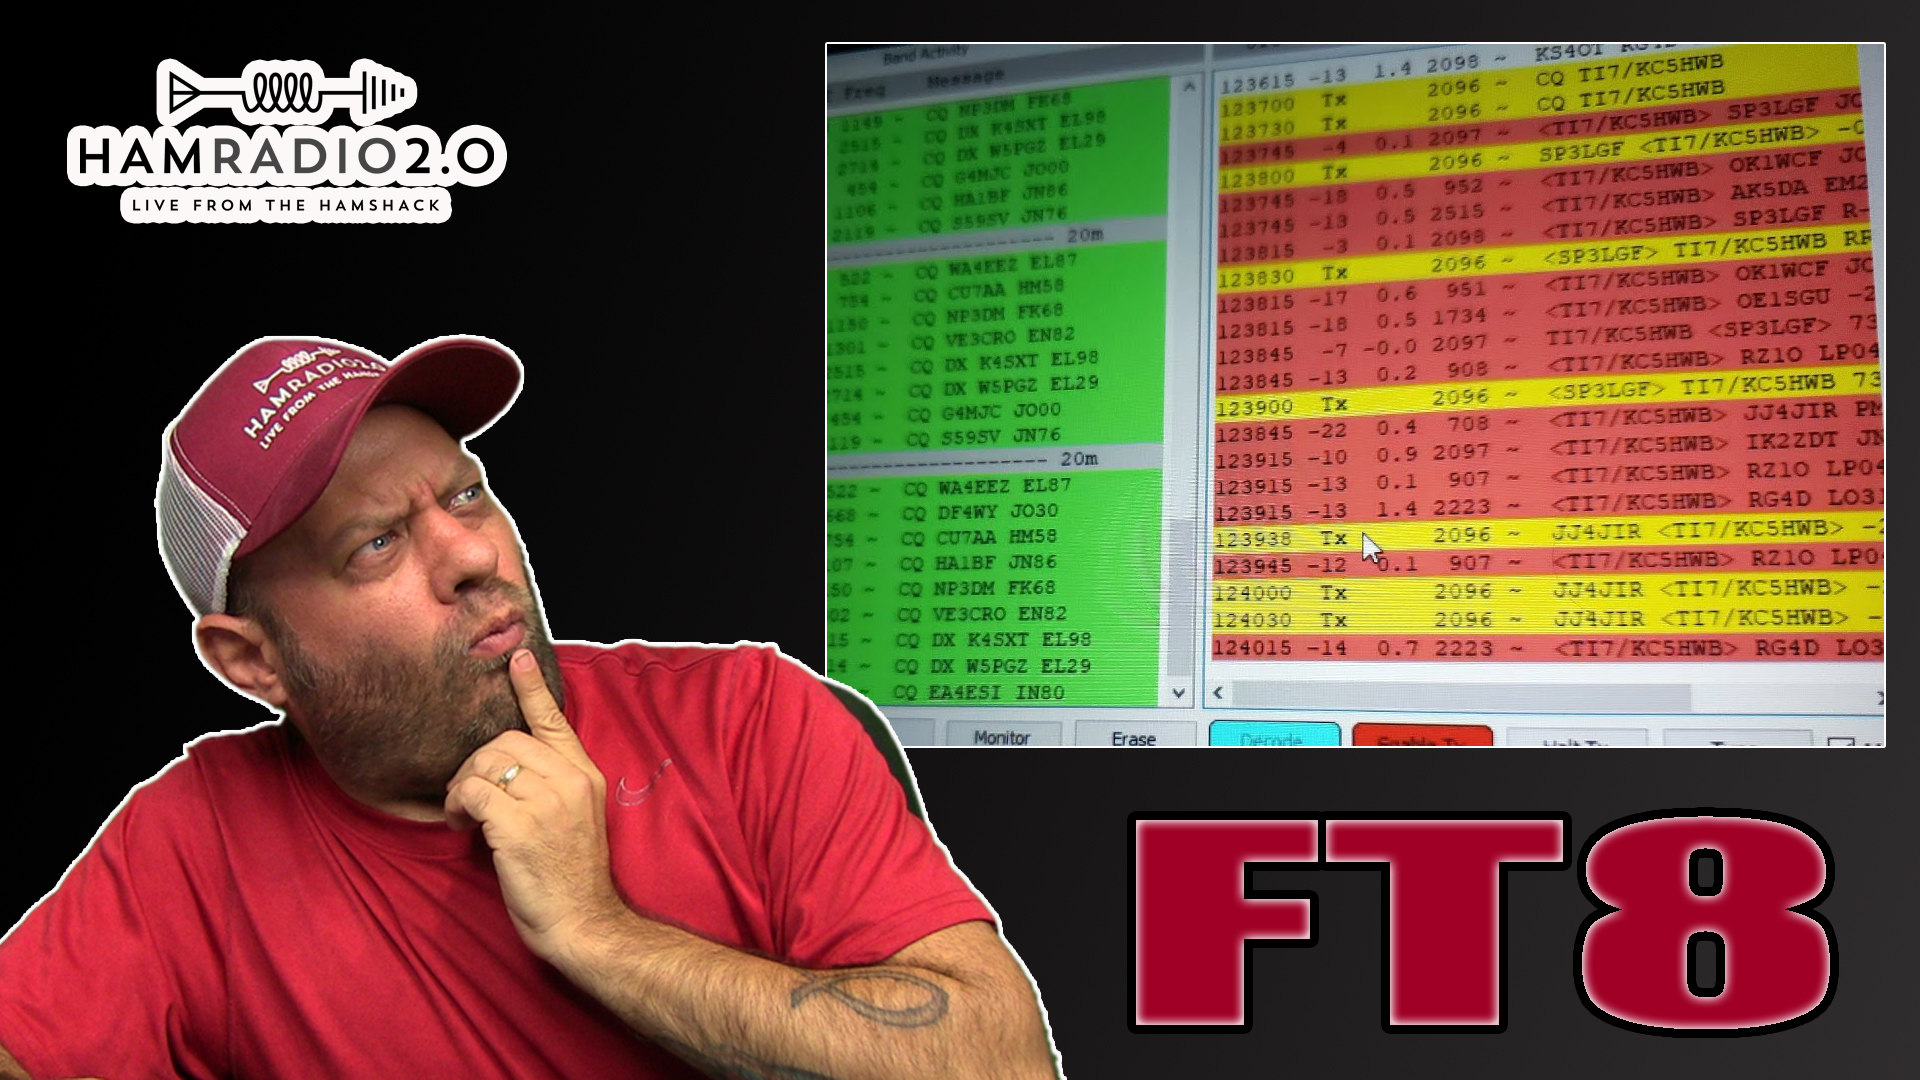 Episode 264: Operating FT8 in Costa Rica Remotely from Texas